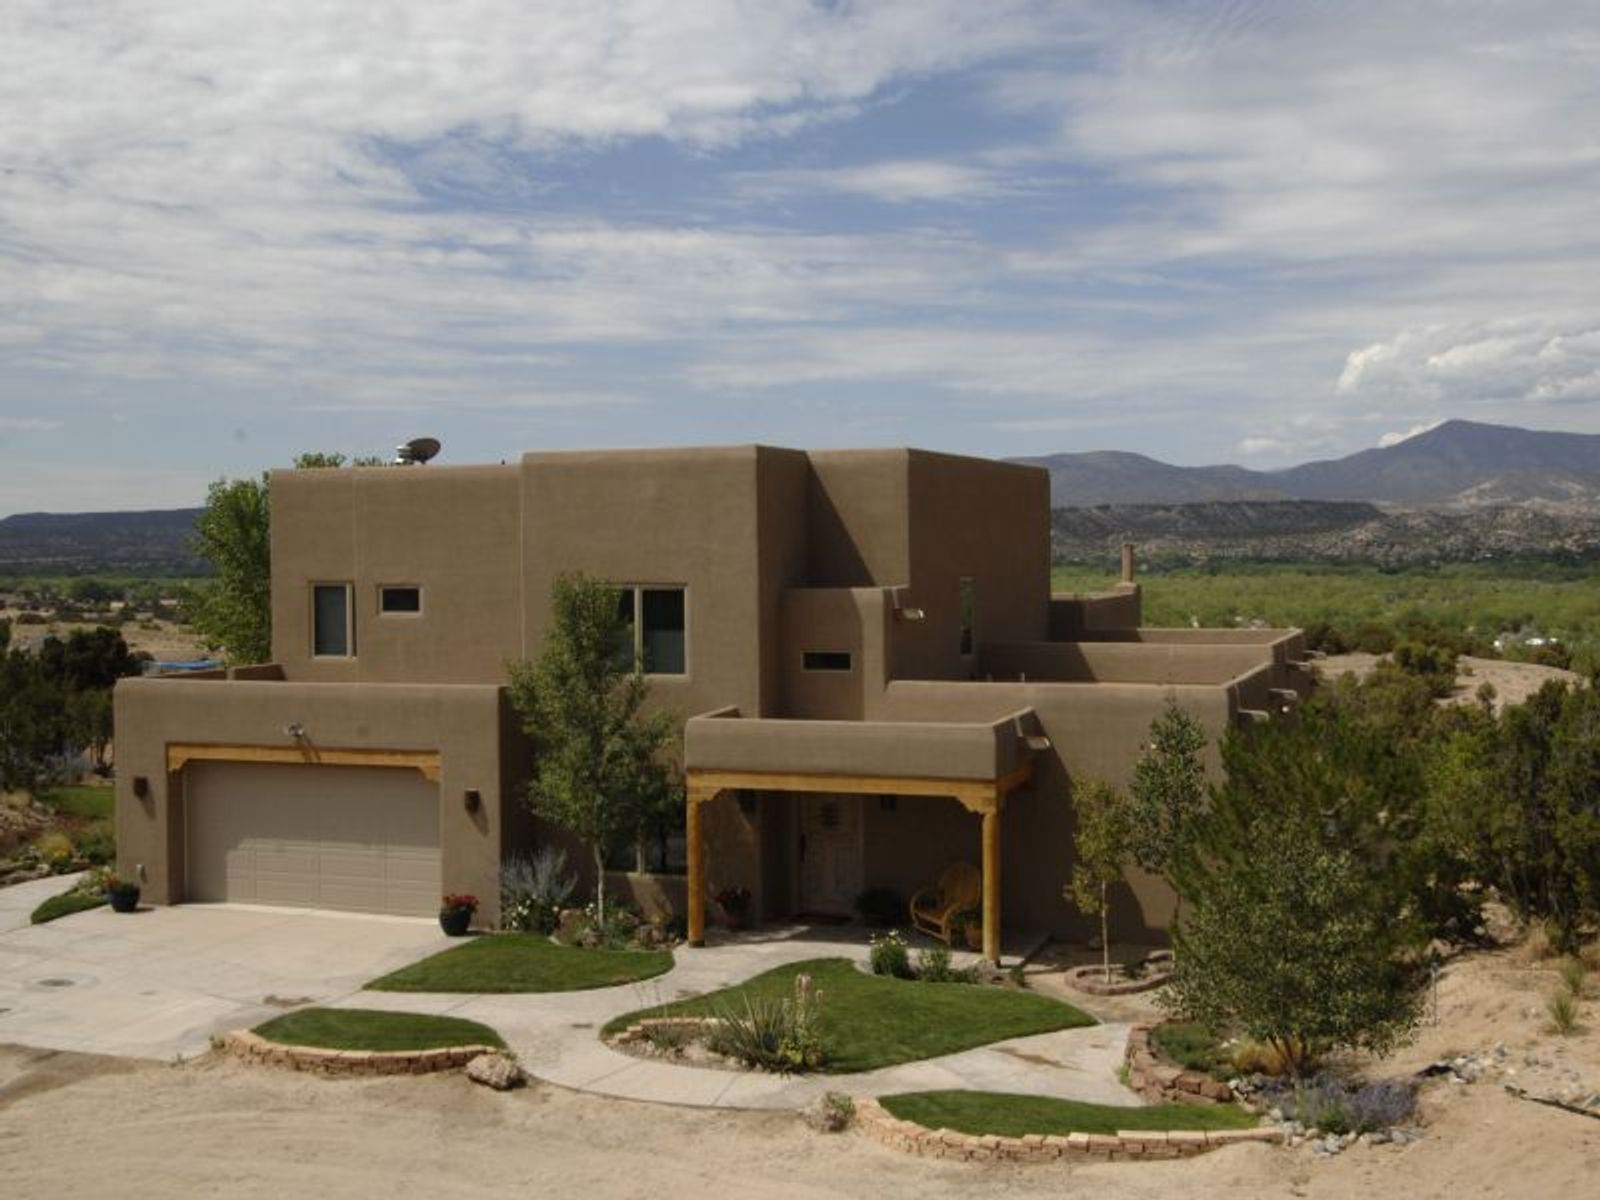 middle eastern singles in ojo caliente An hour north of santa fe, ojo caliente is a beloved destination in new mexico and the only place in the world that combines four distinct geothermal mineral waters (also known as.